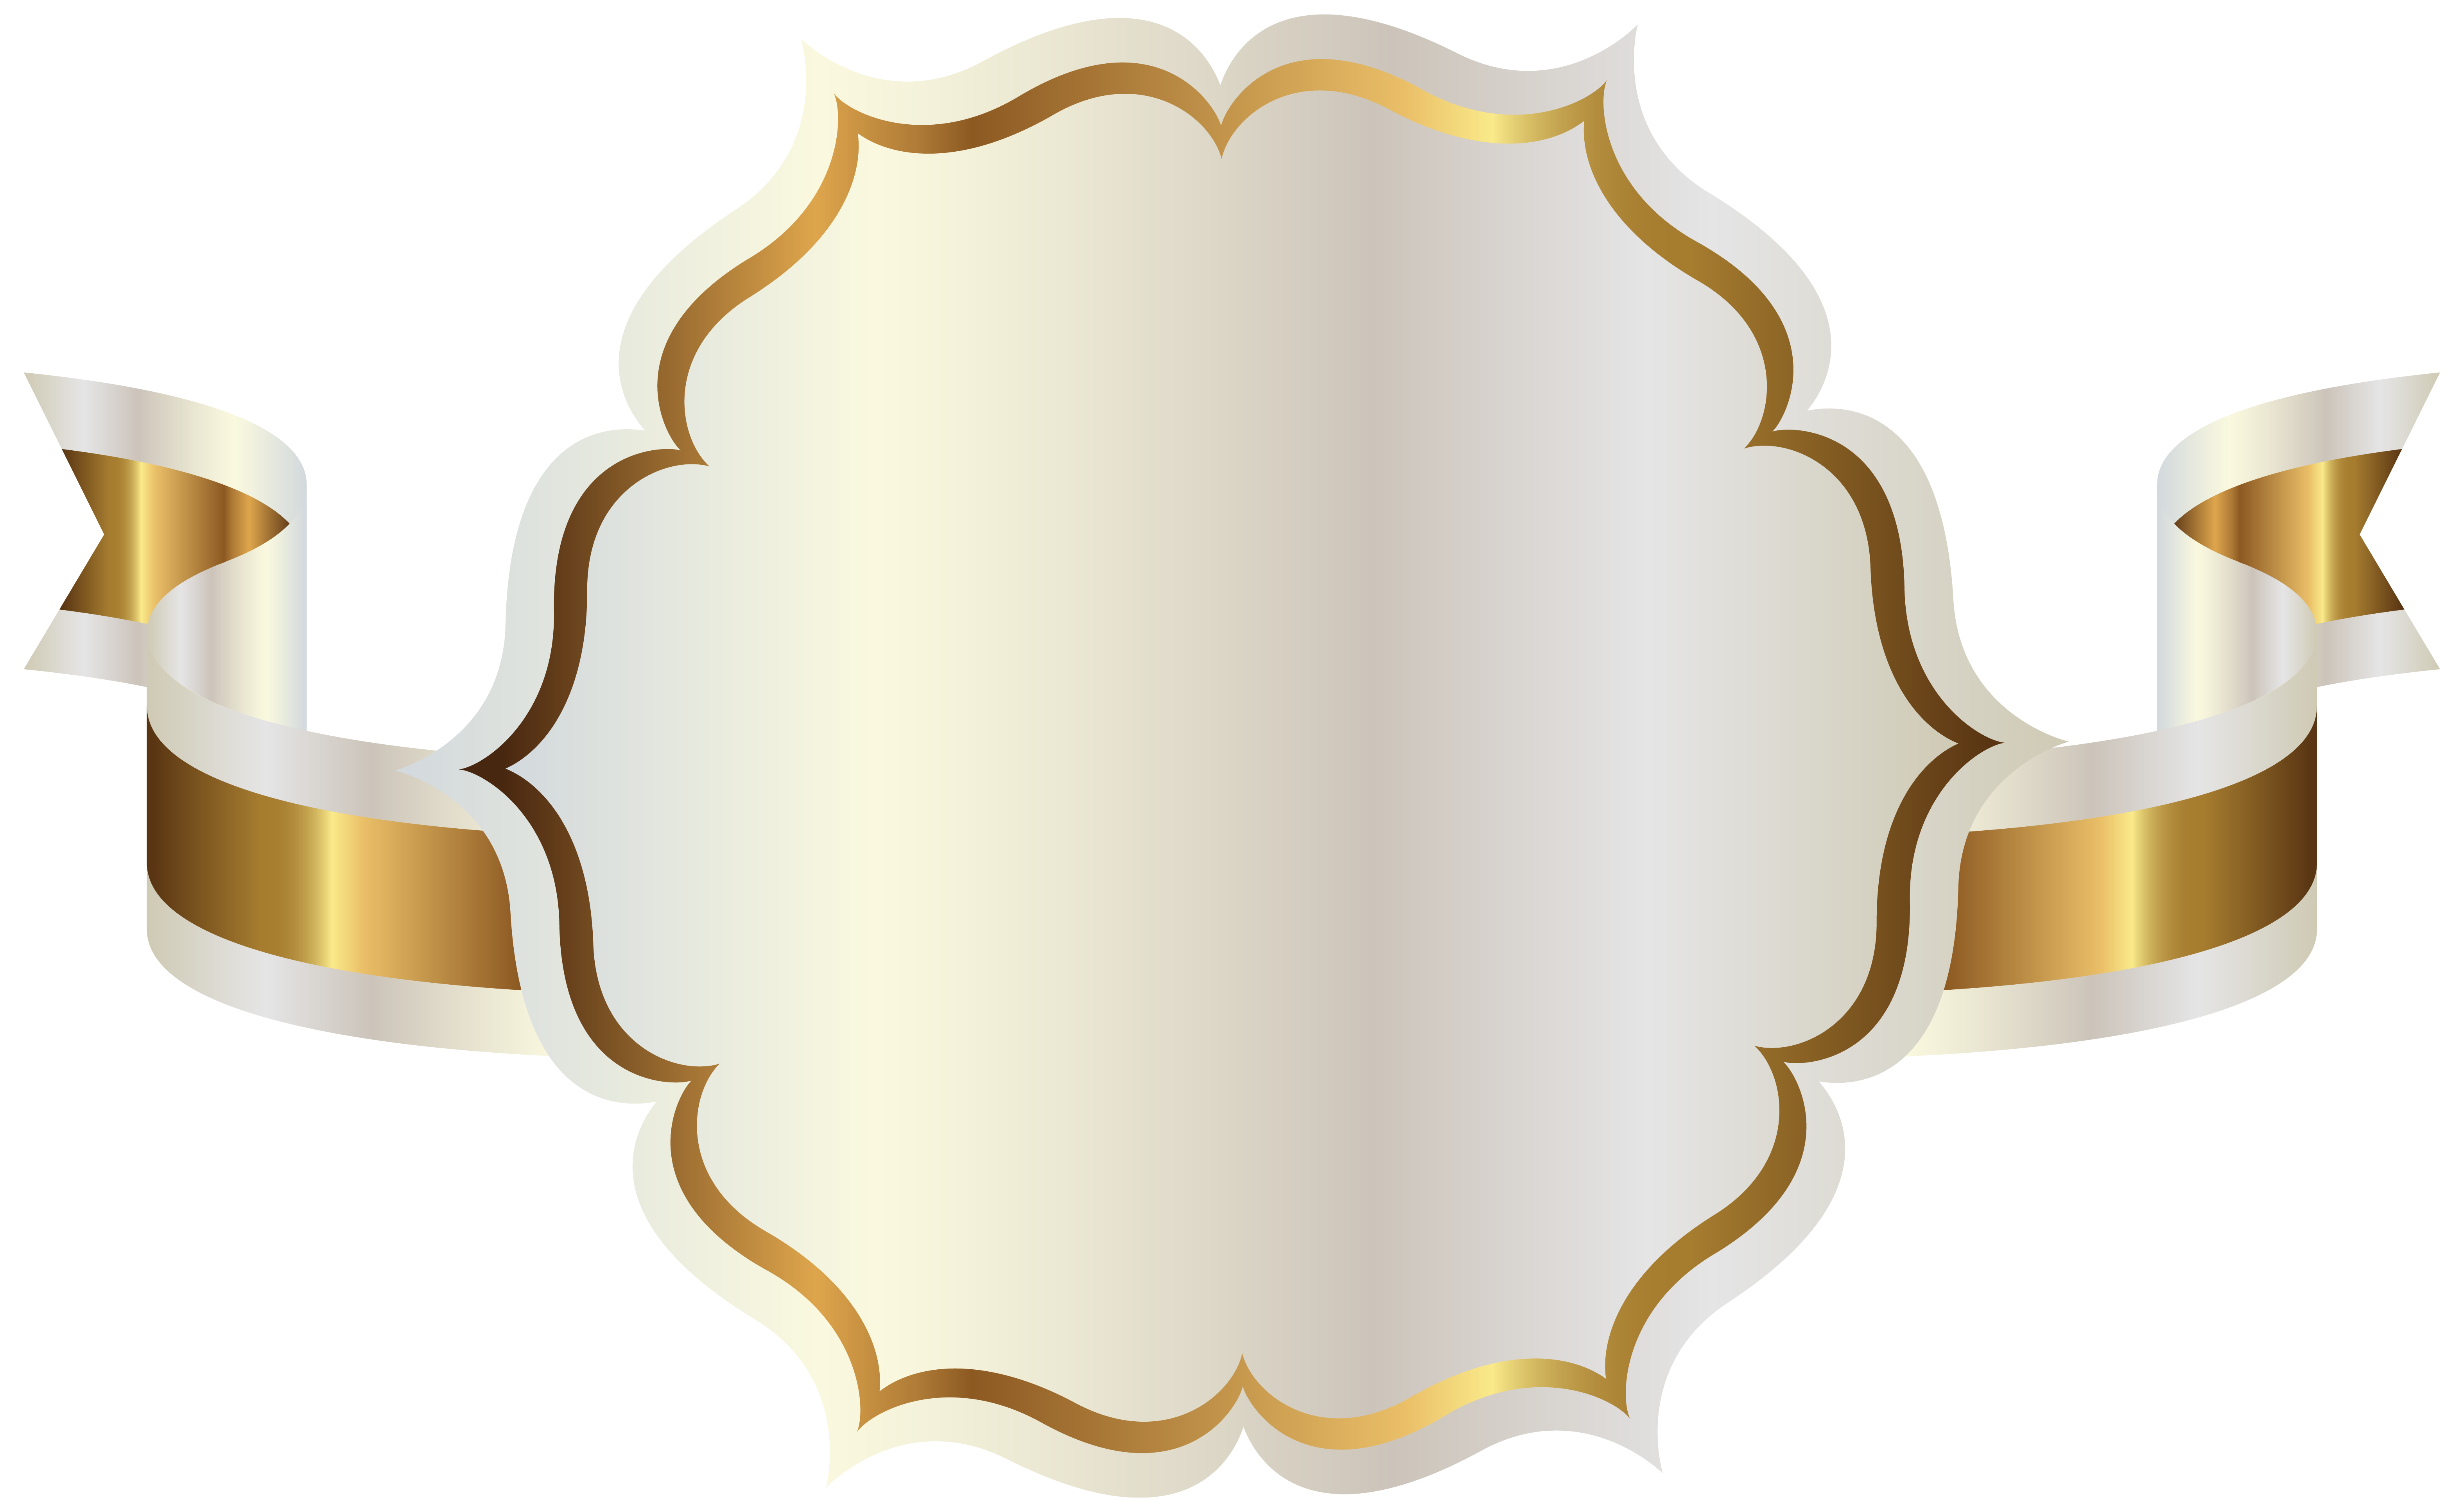 Ribbon clipart label. White with gold png